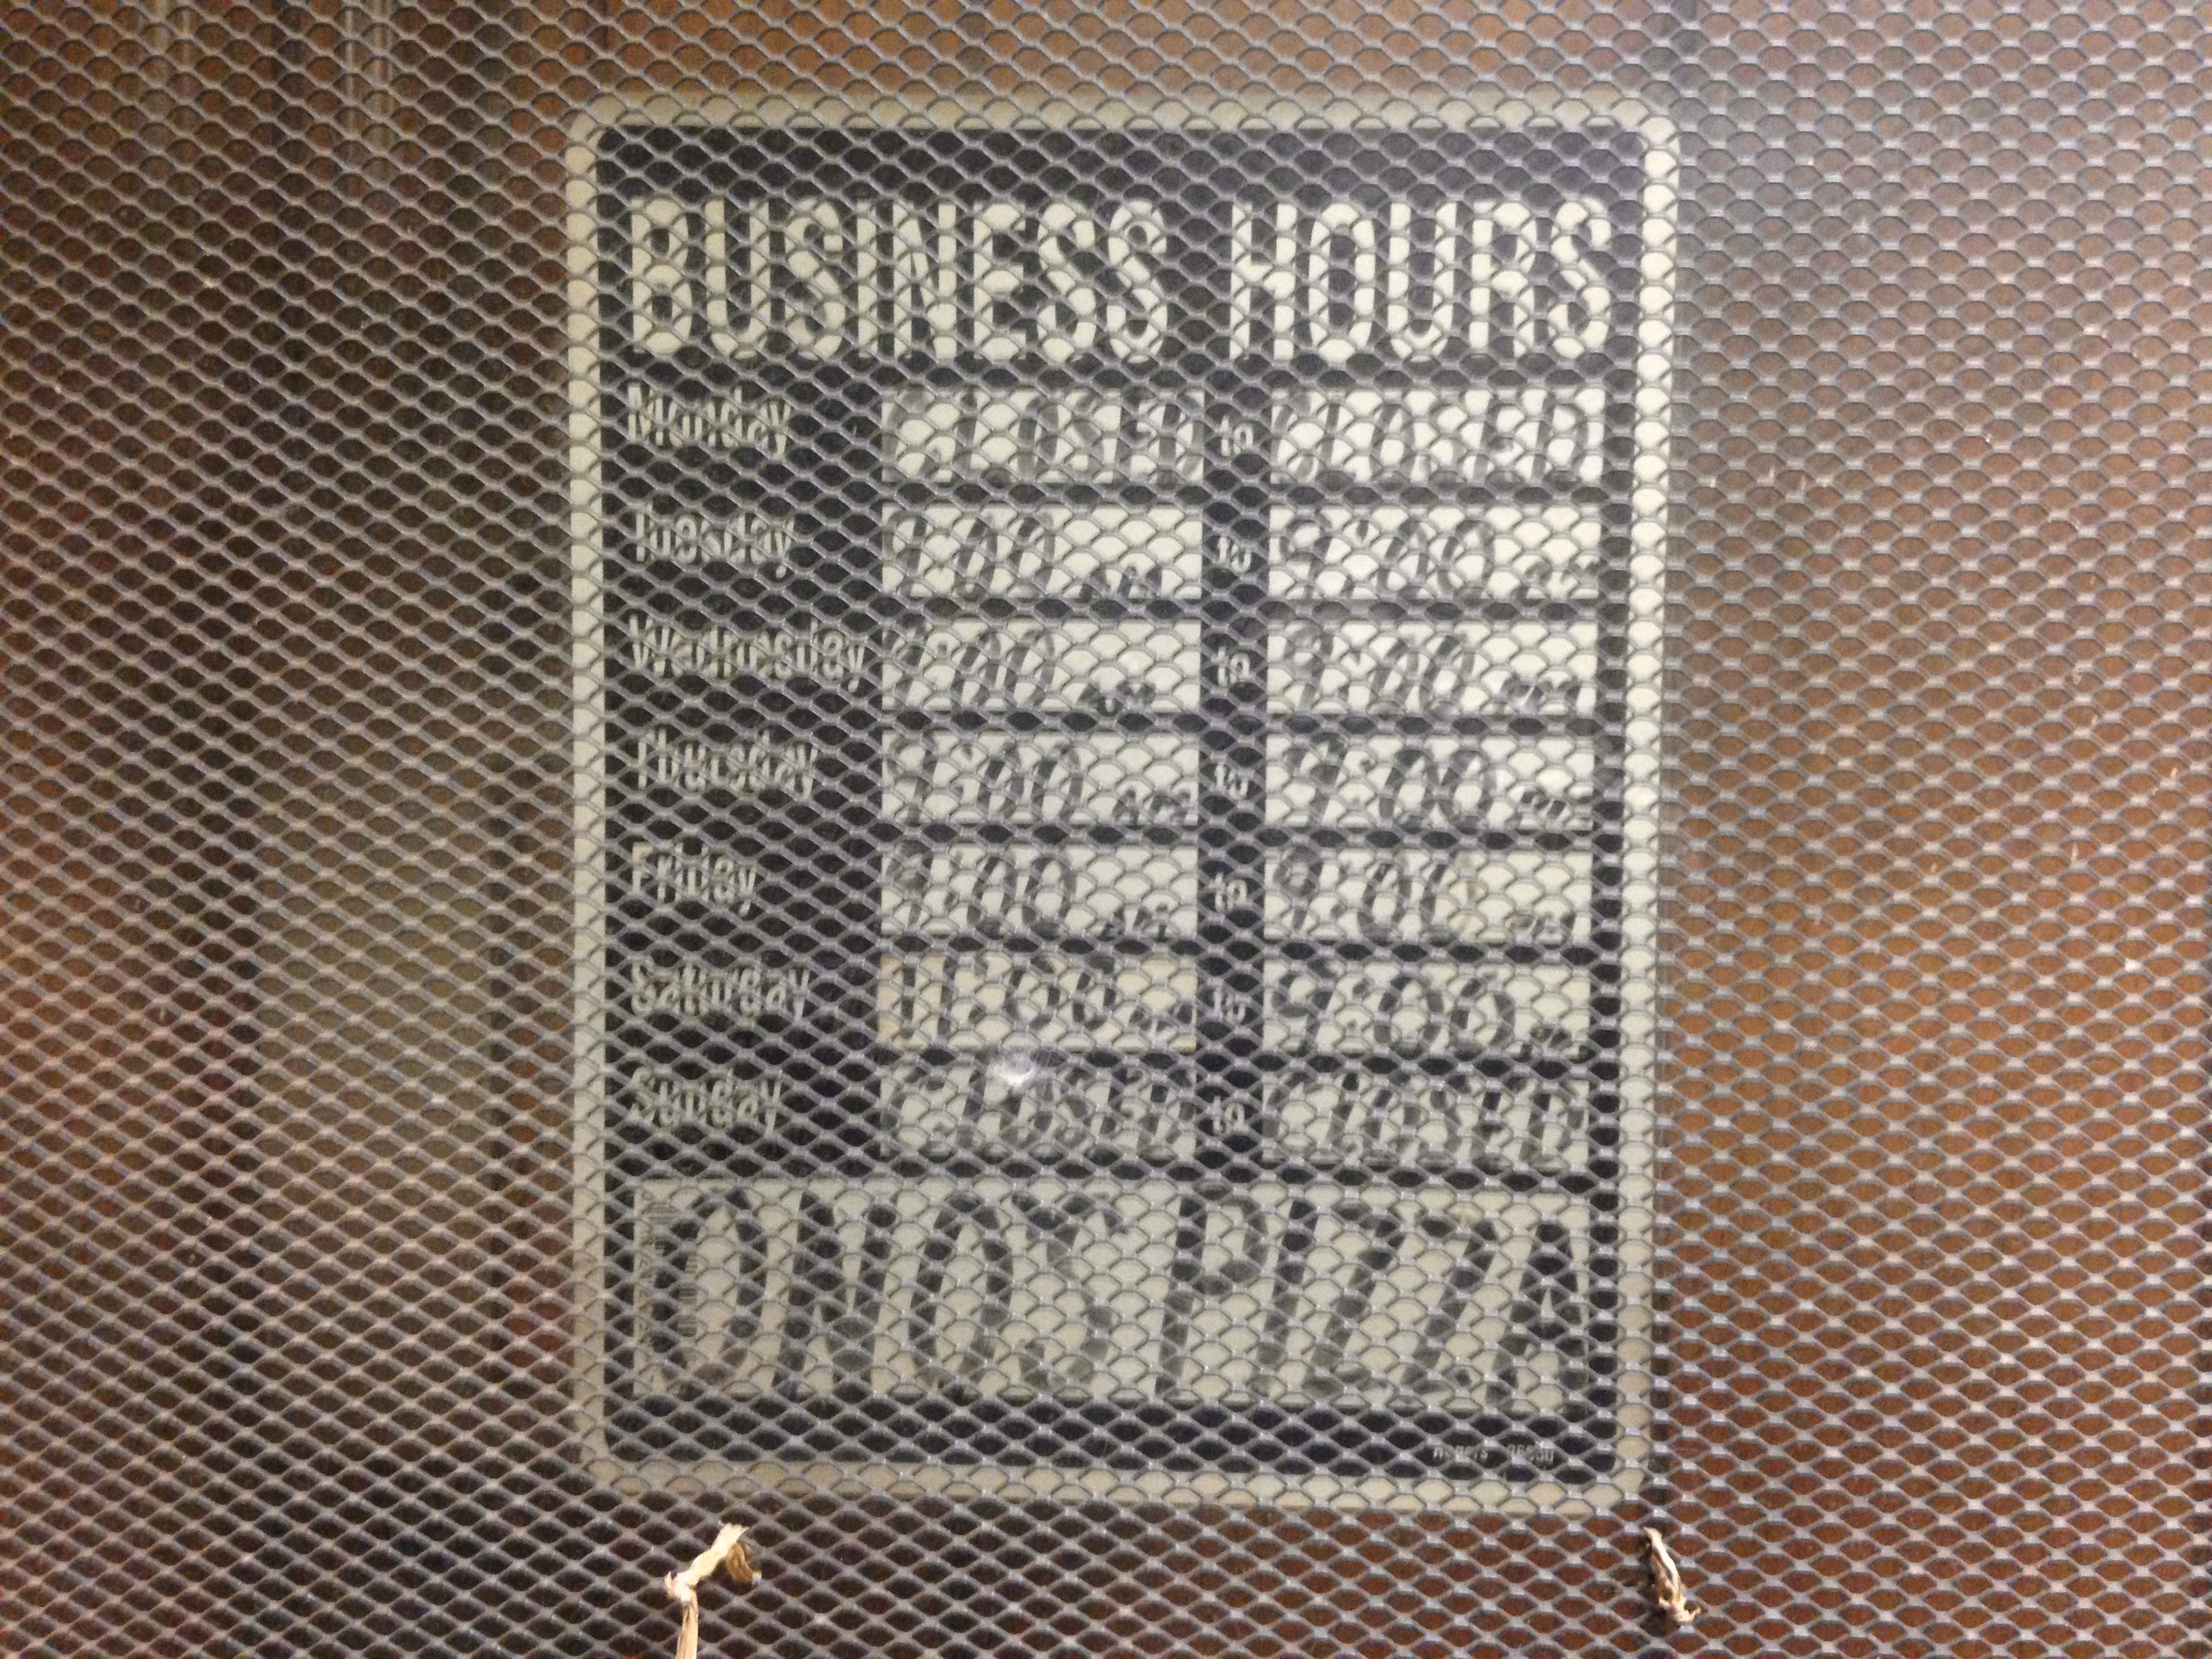 Business Hours at Ono's - Gary, Indiana